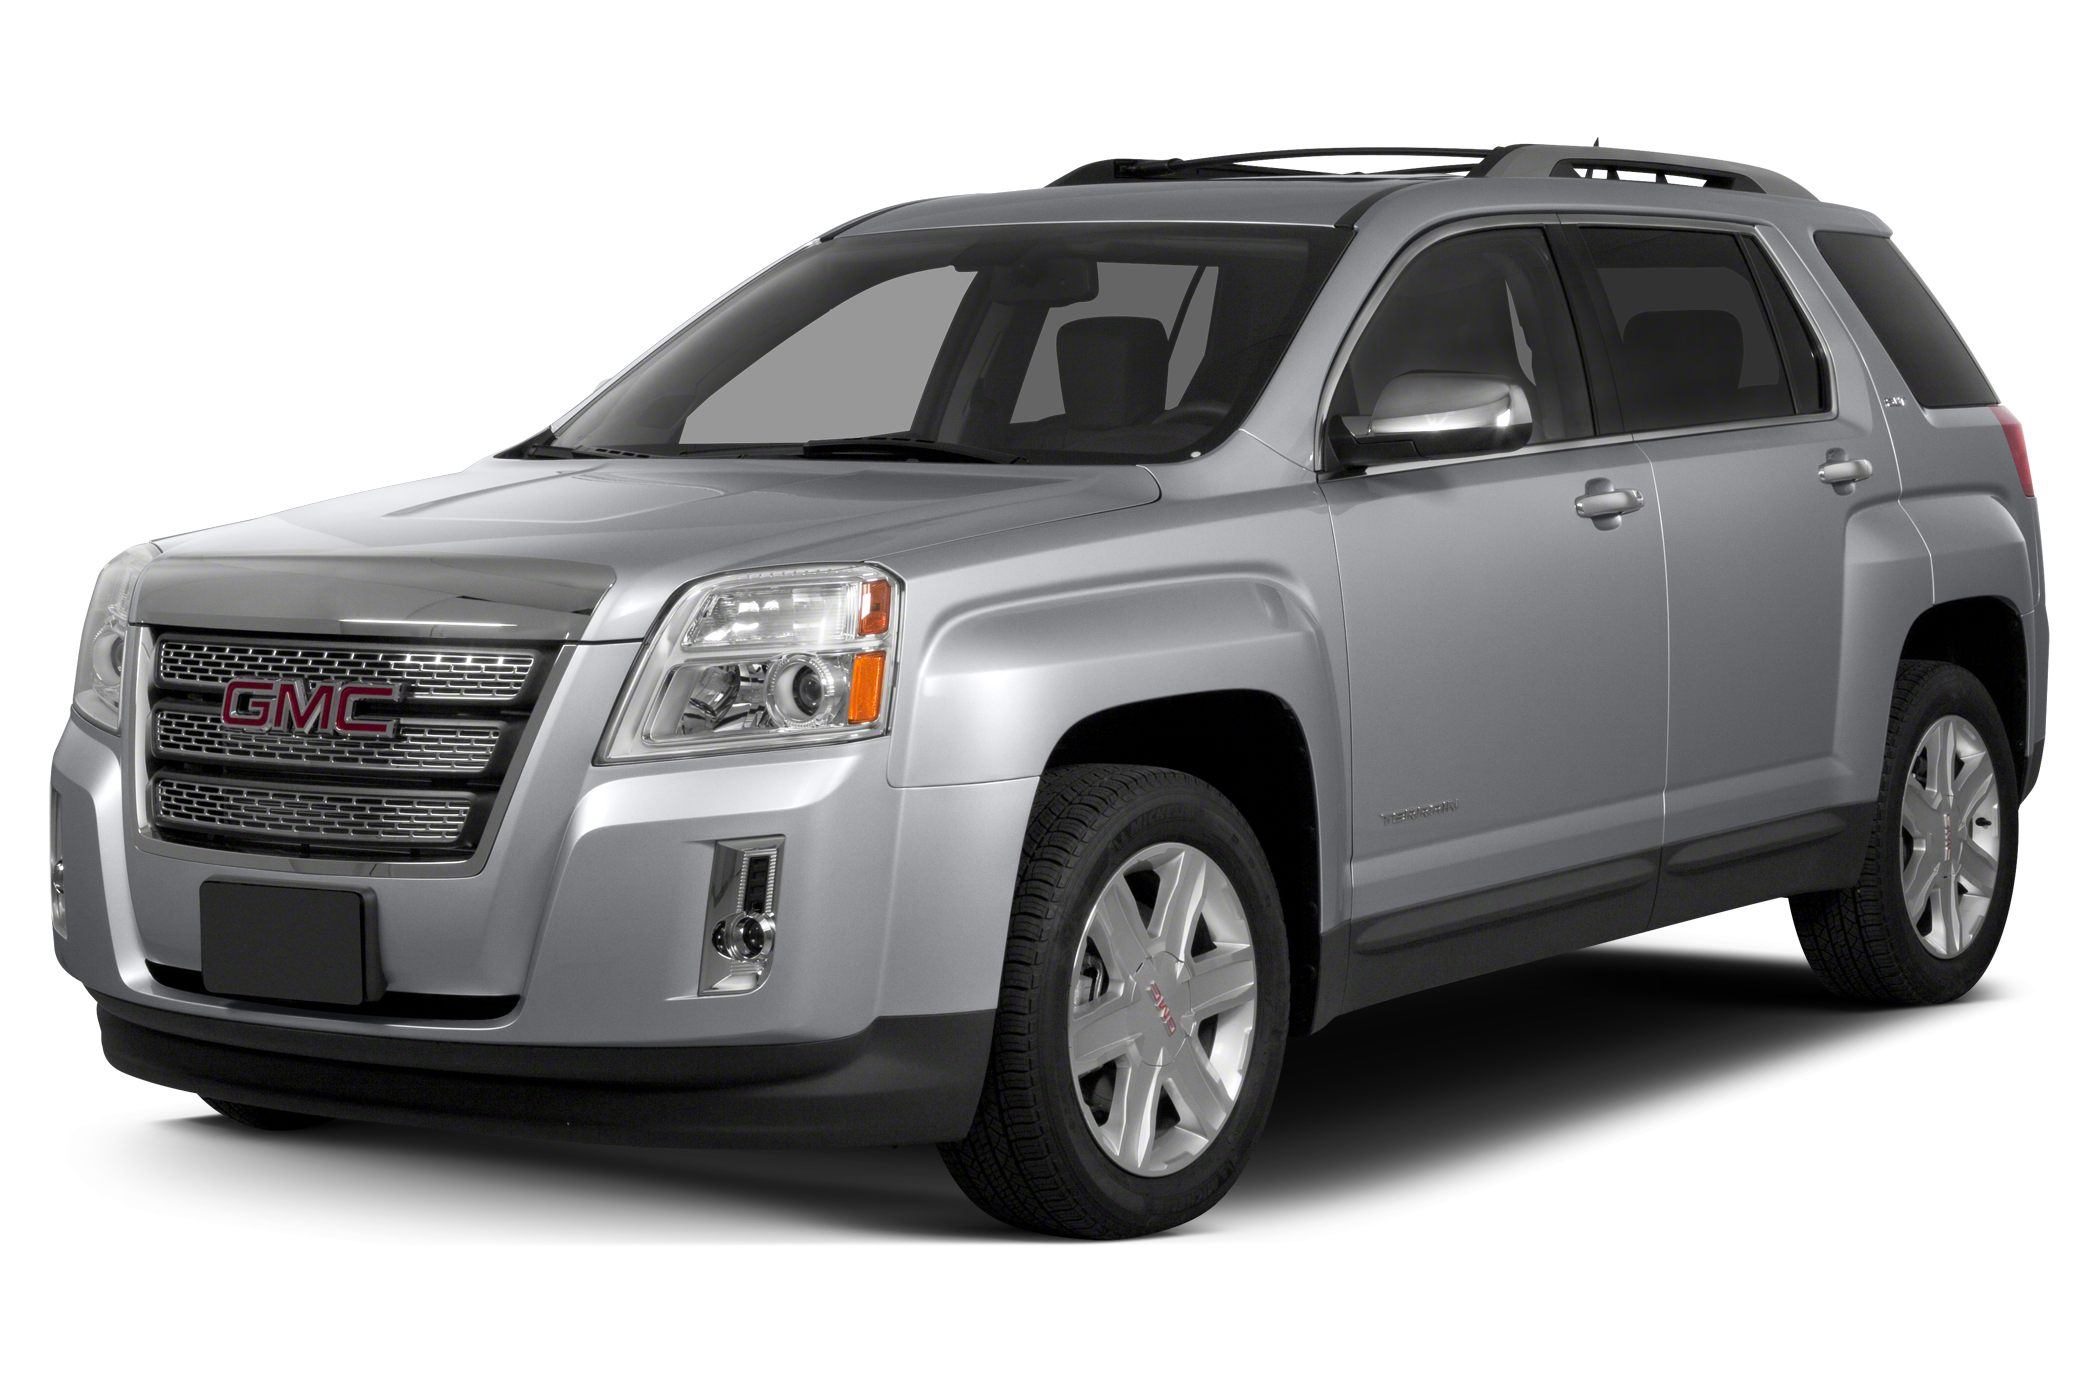 2015 GMC Terrain Specs Safety Rating & MPG CarsDirect